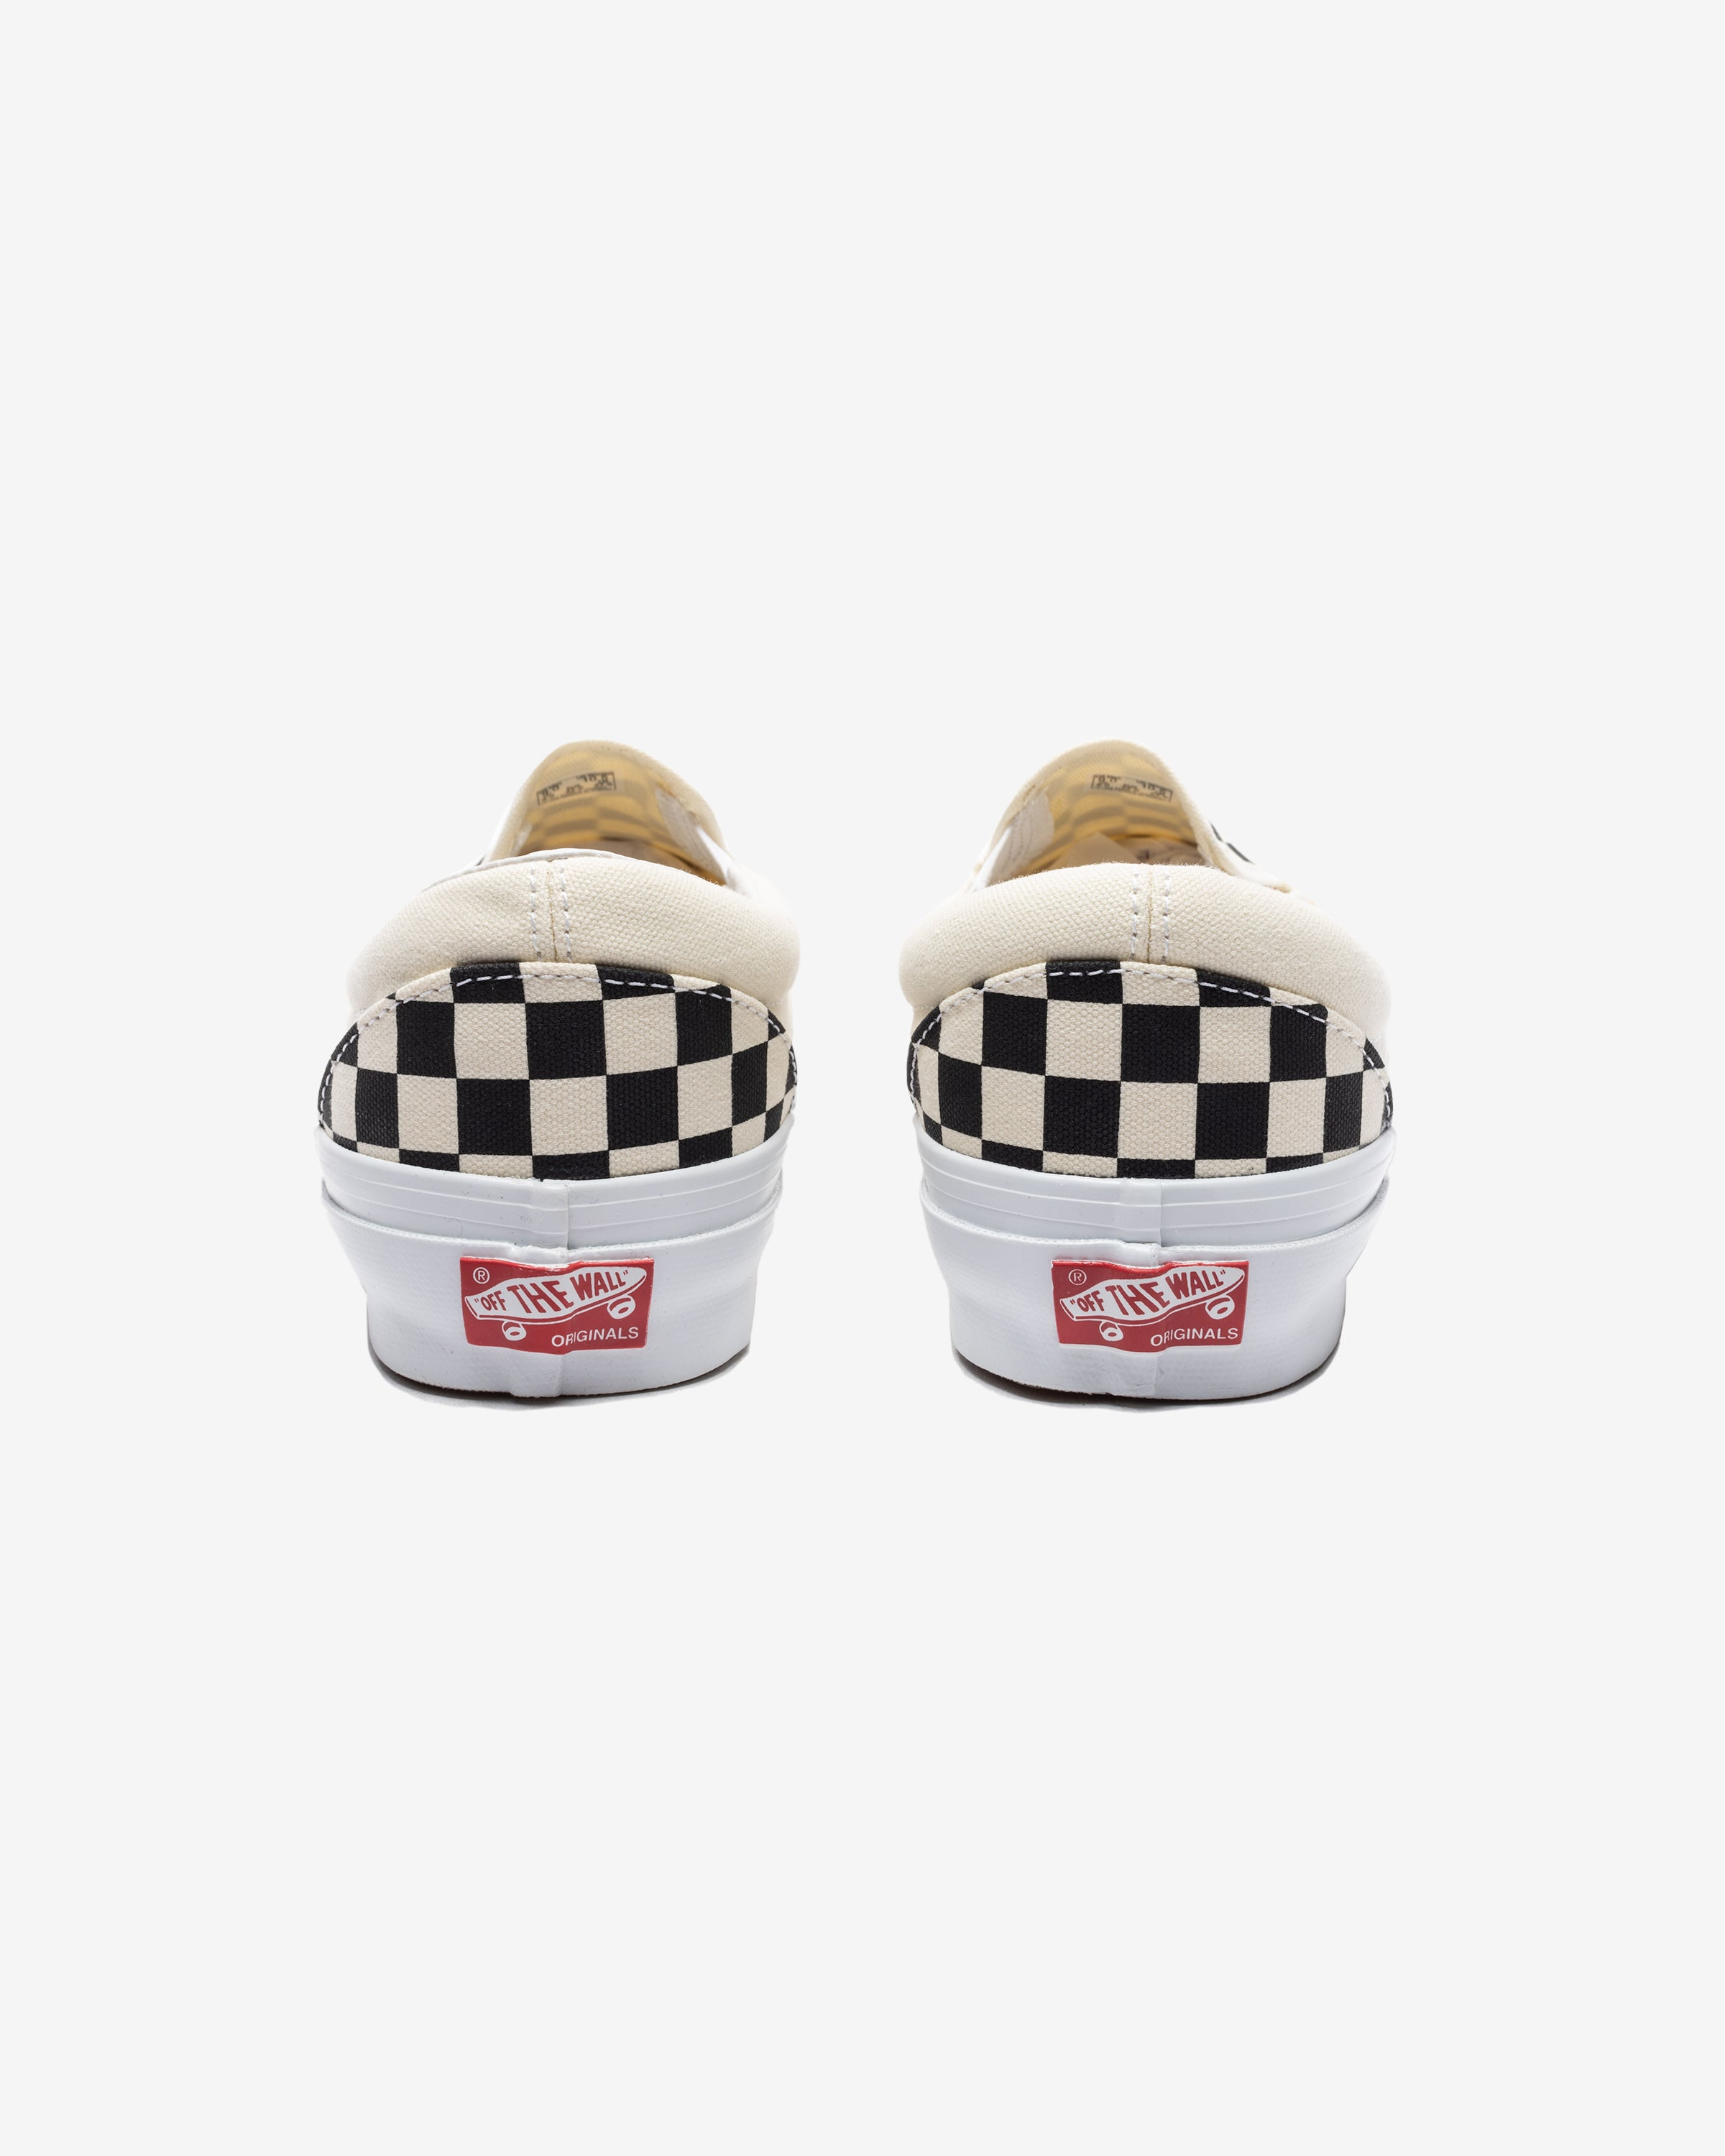 OG CLASSIC SLIP-ON (CANVAS) - CHECKERBOARD